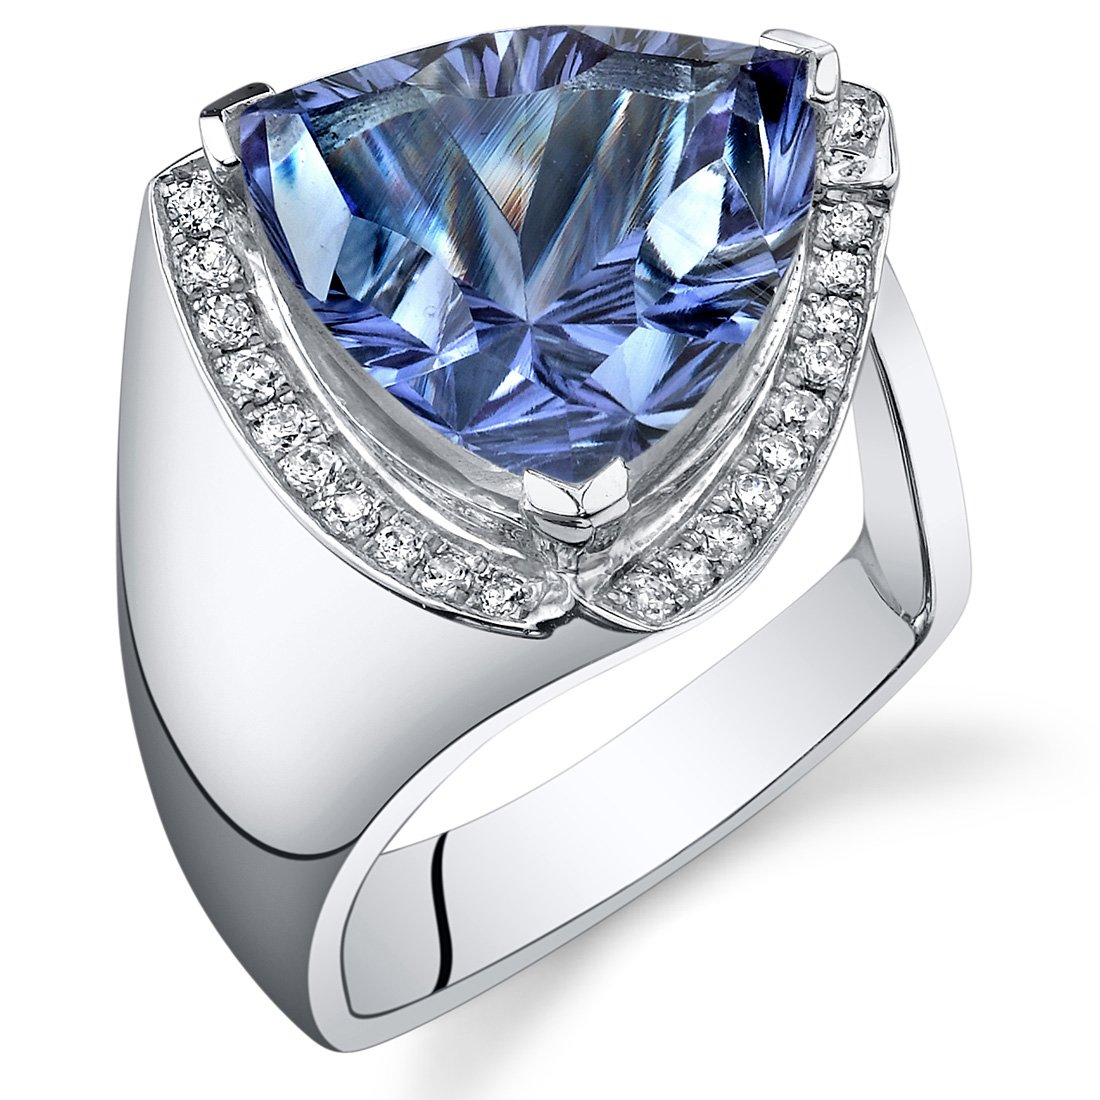 Free 8 00 Cts Trillion Cut Alexandrite Ring Sterling Silver Wallpaper